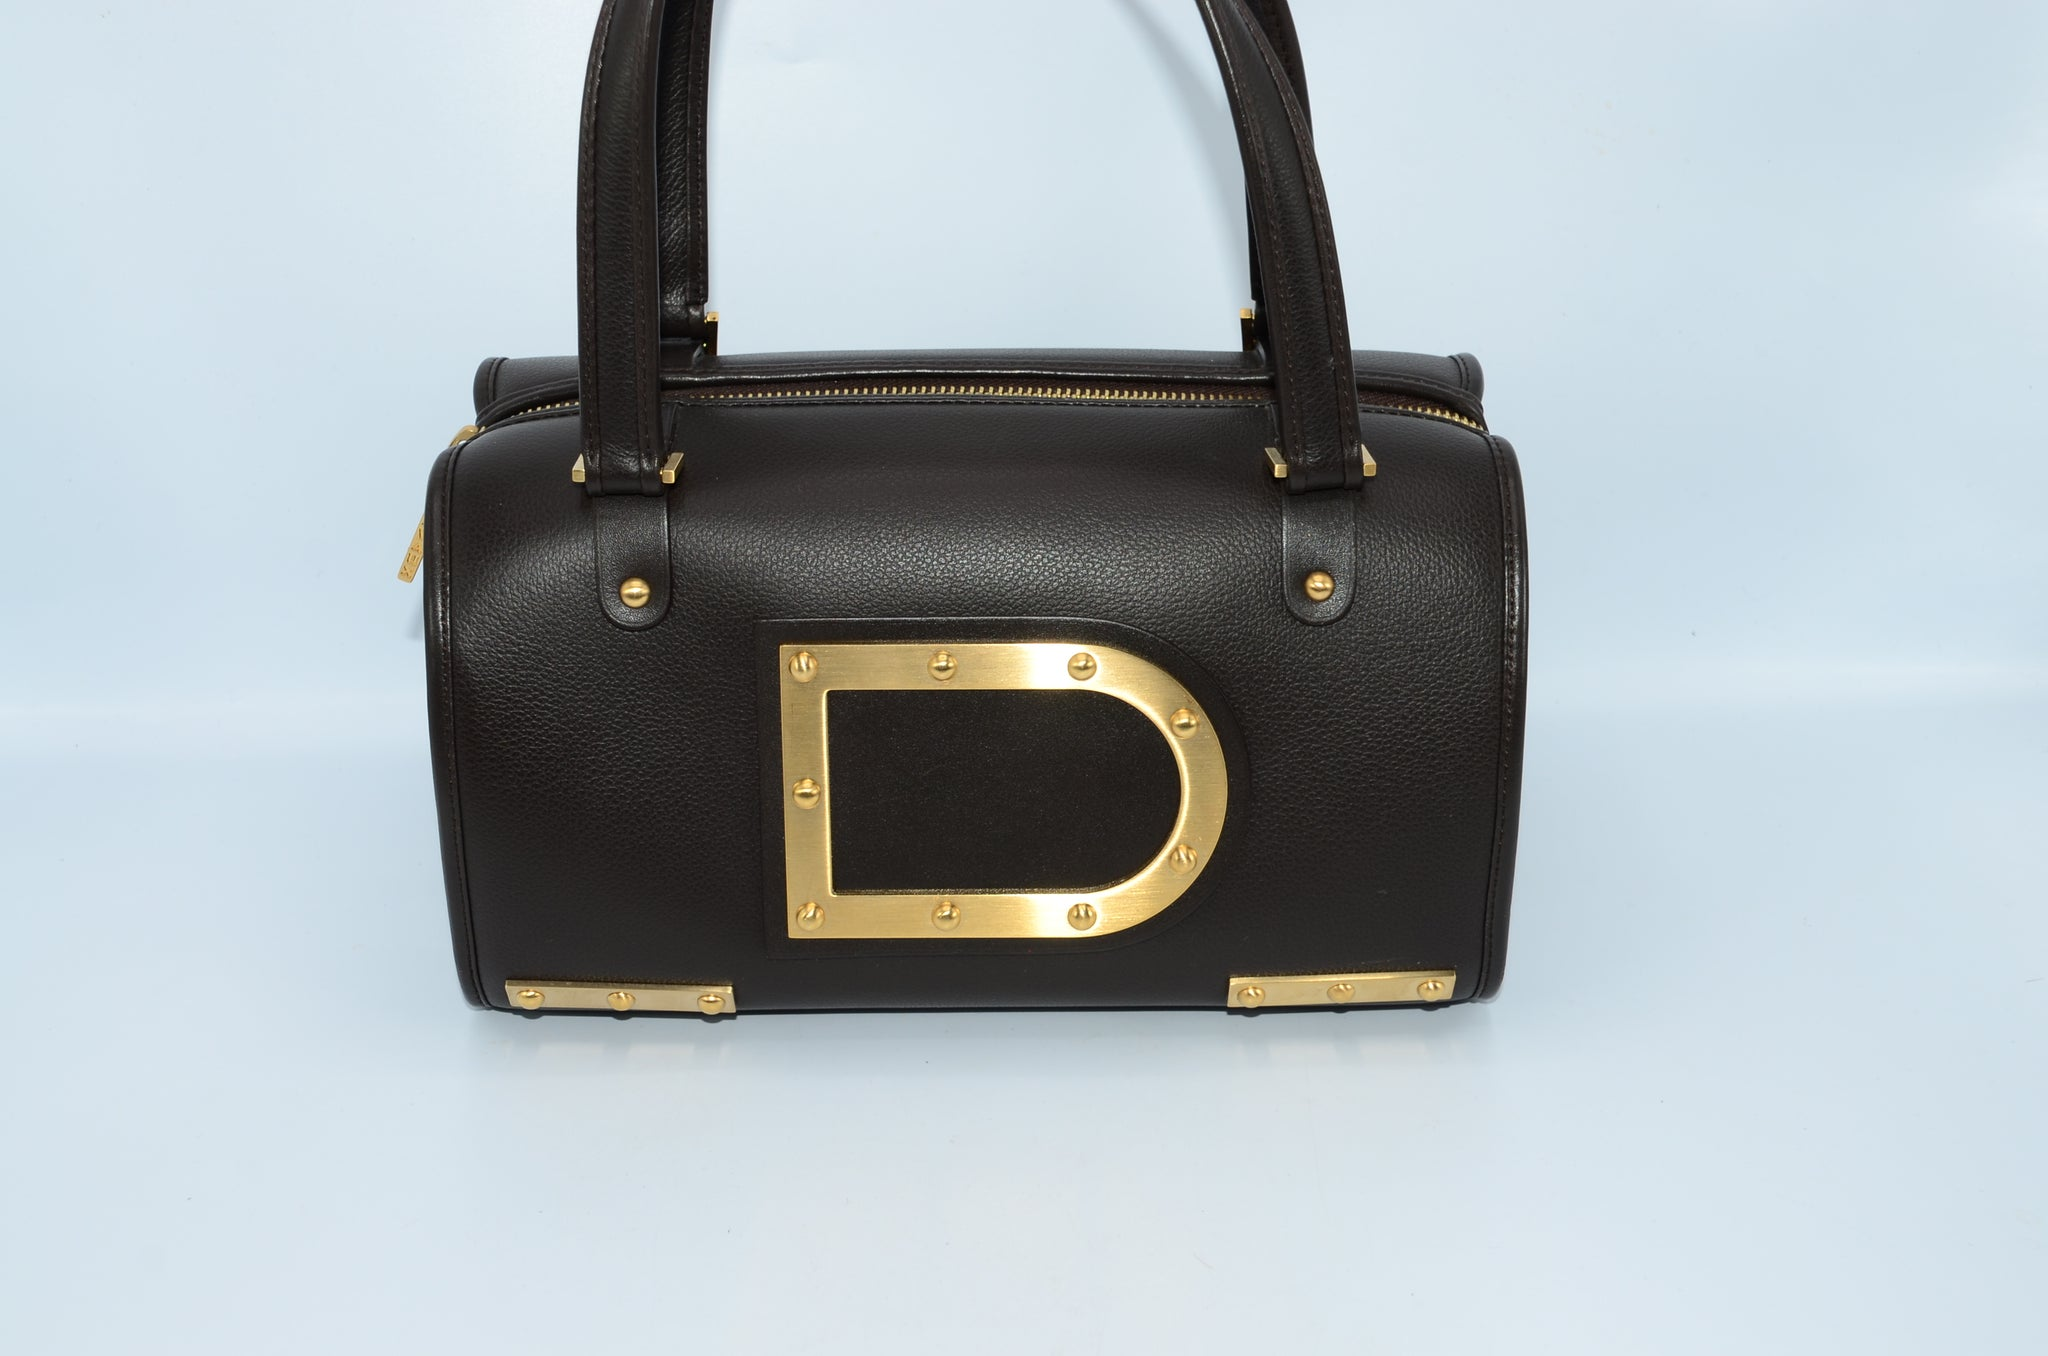 Delvaux Astrid handbag - Iconics Preloved Luxury